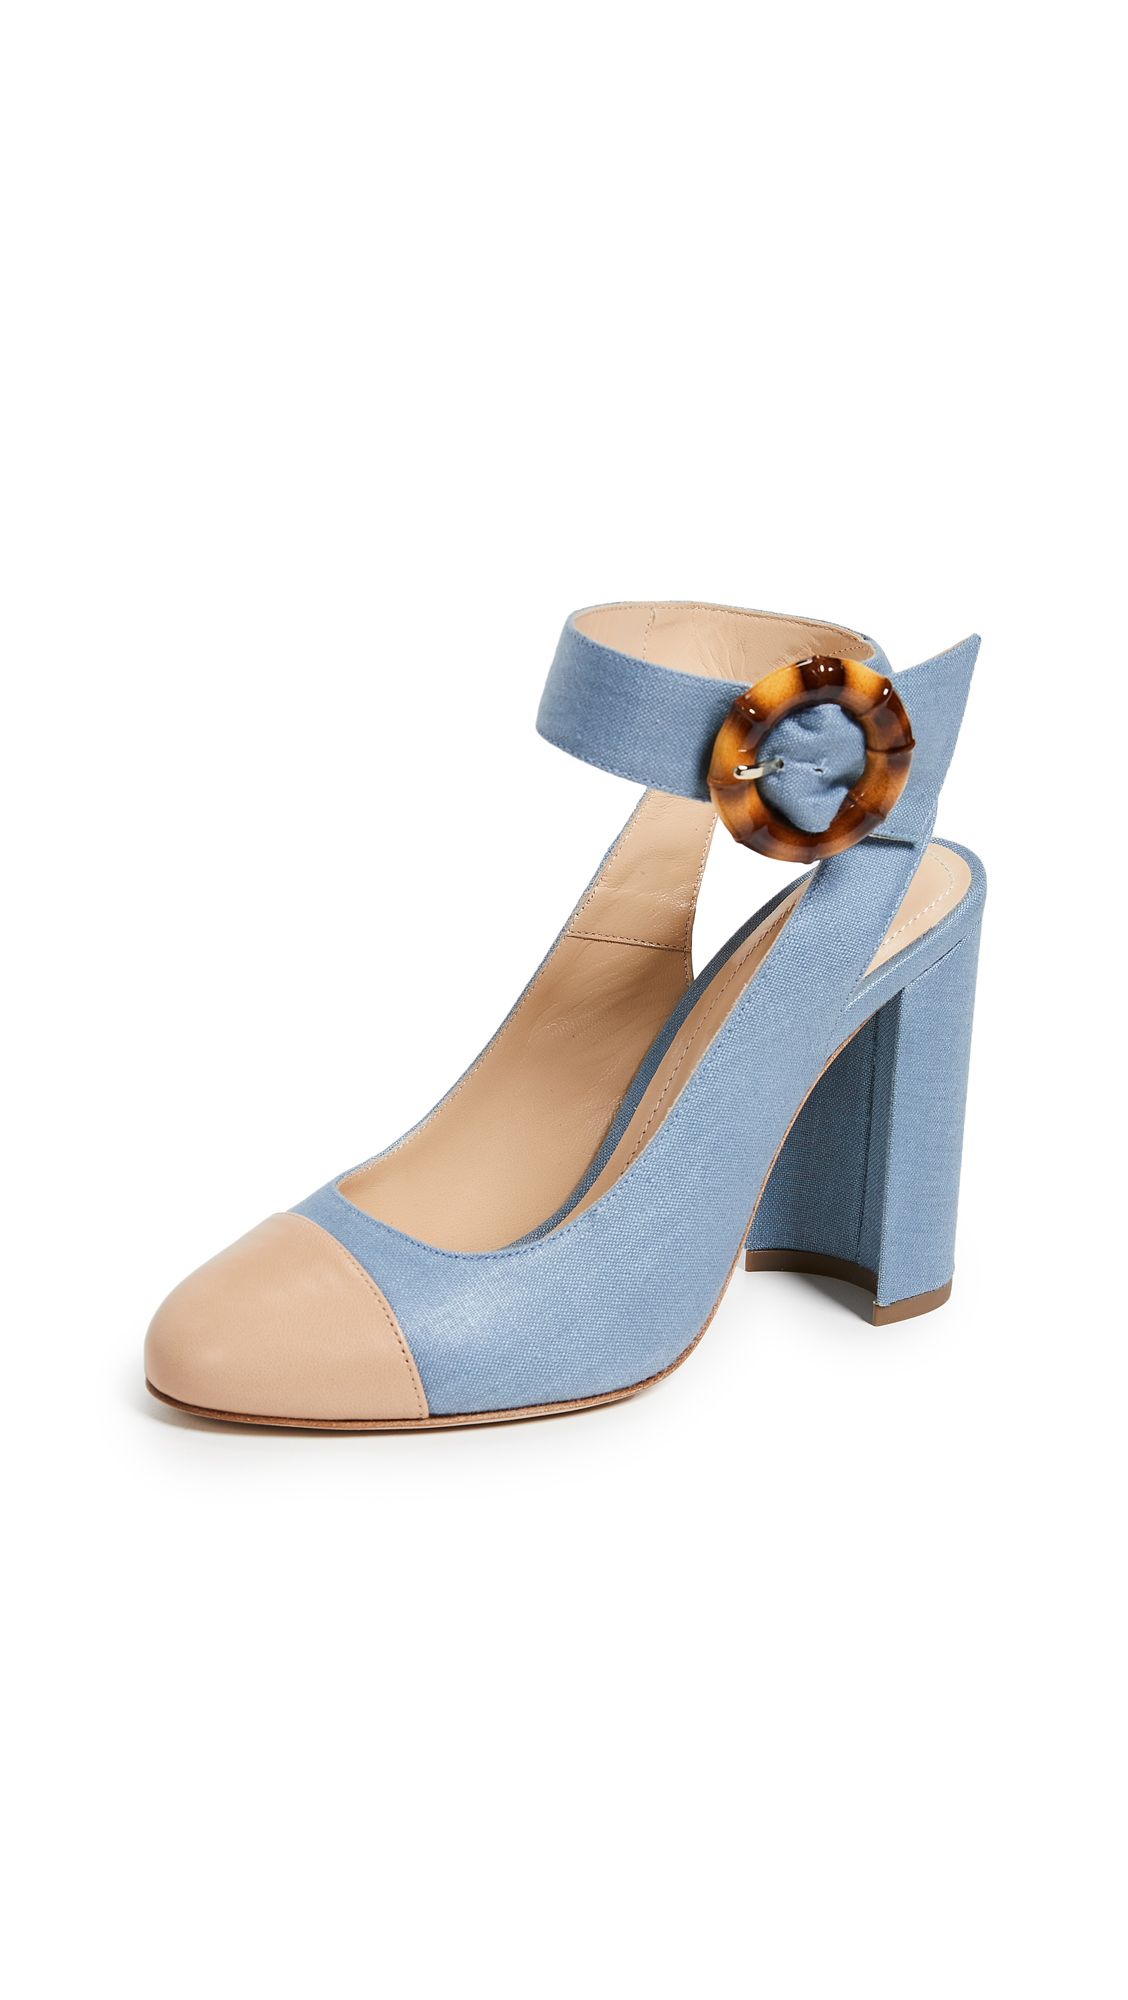 Chloe Gosselin Ellen Pumps - Denim/Noisette